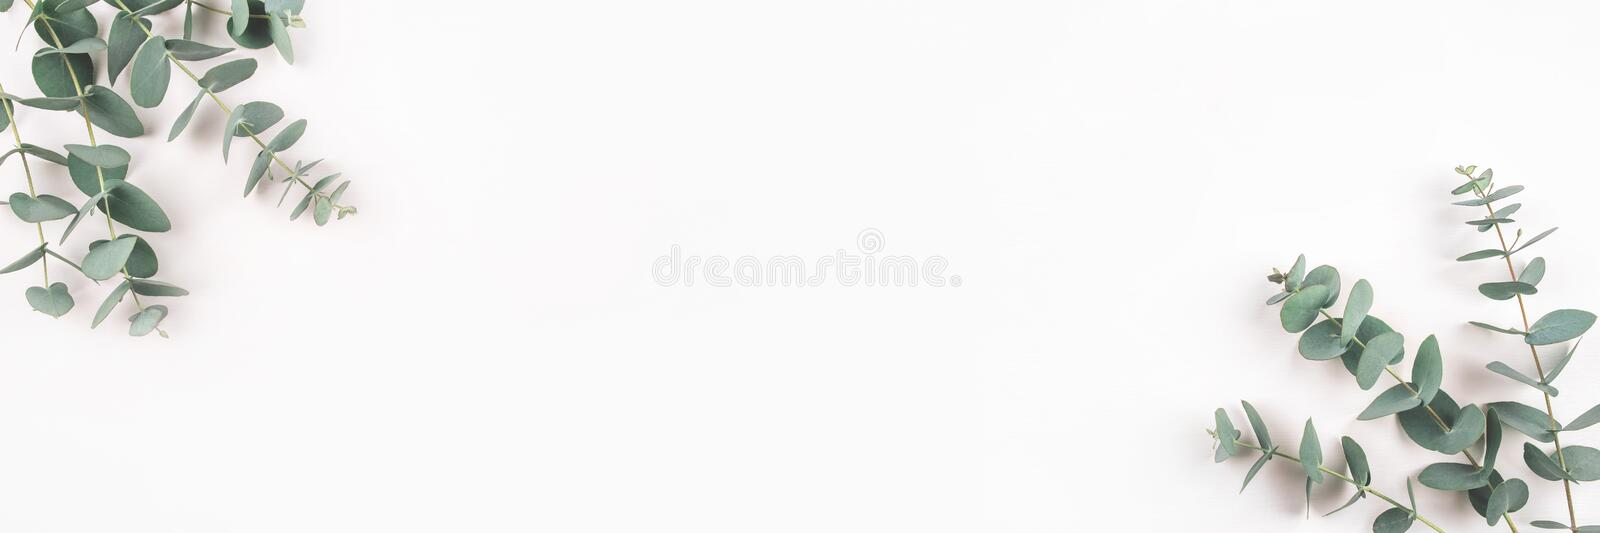 Green eucalyptus branches on a white background. stock images